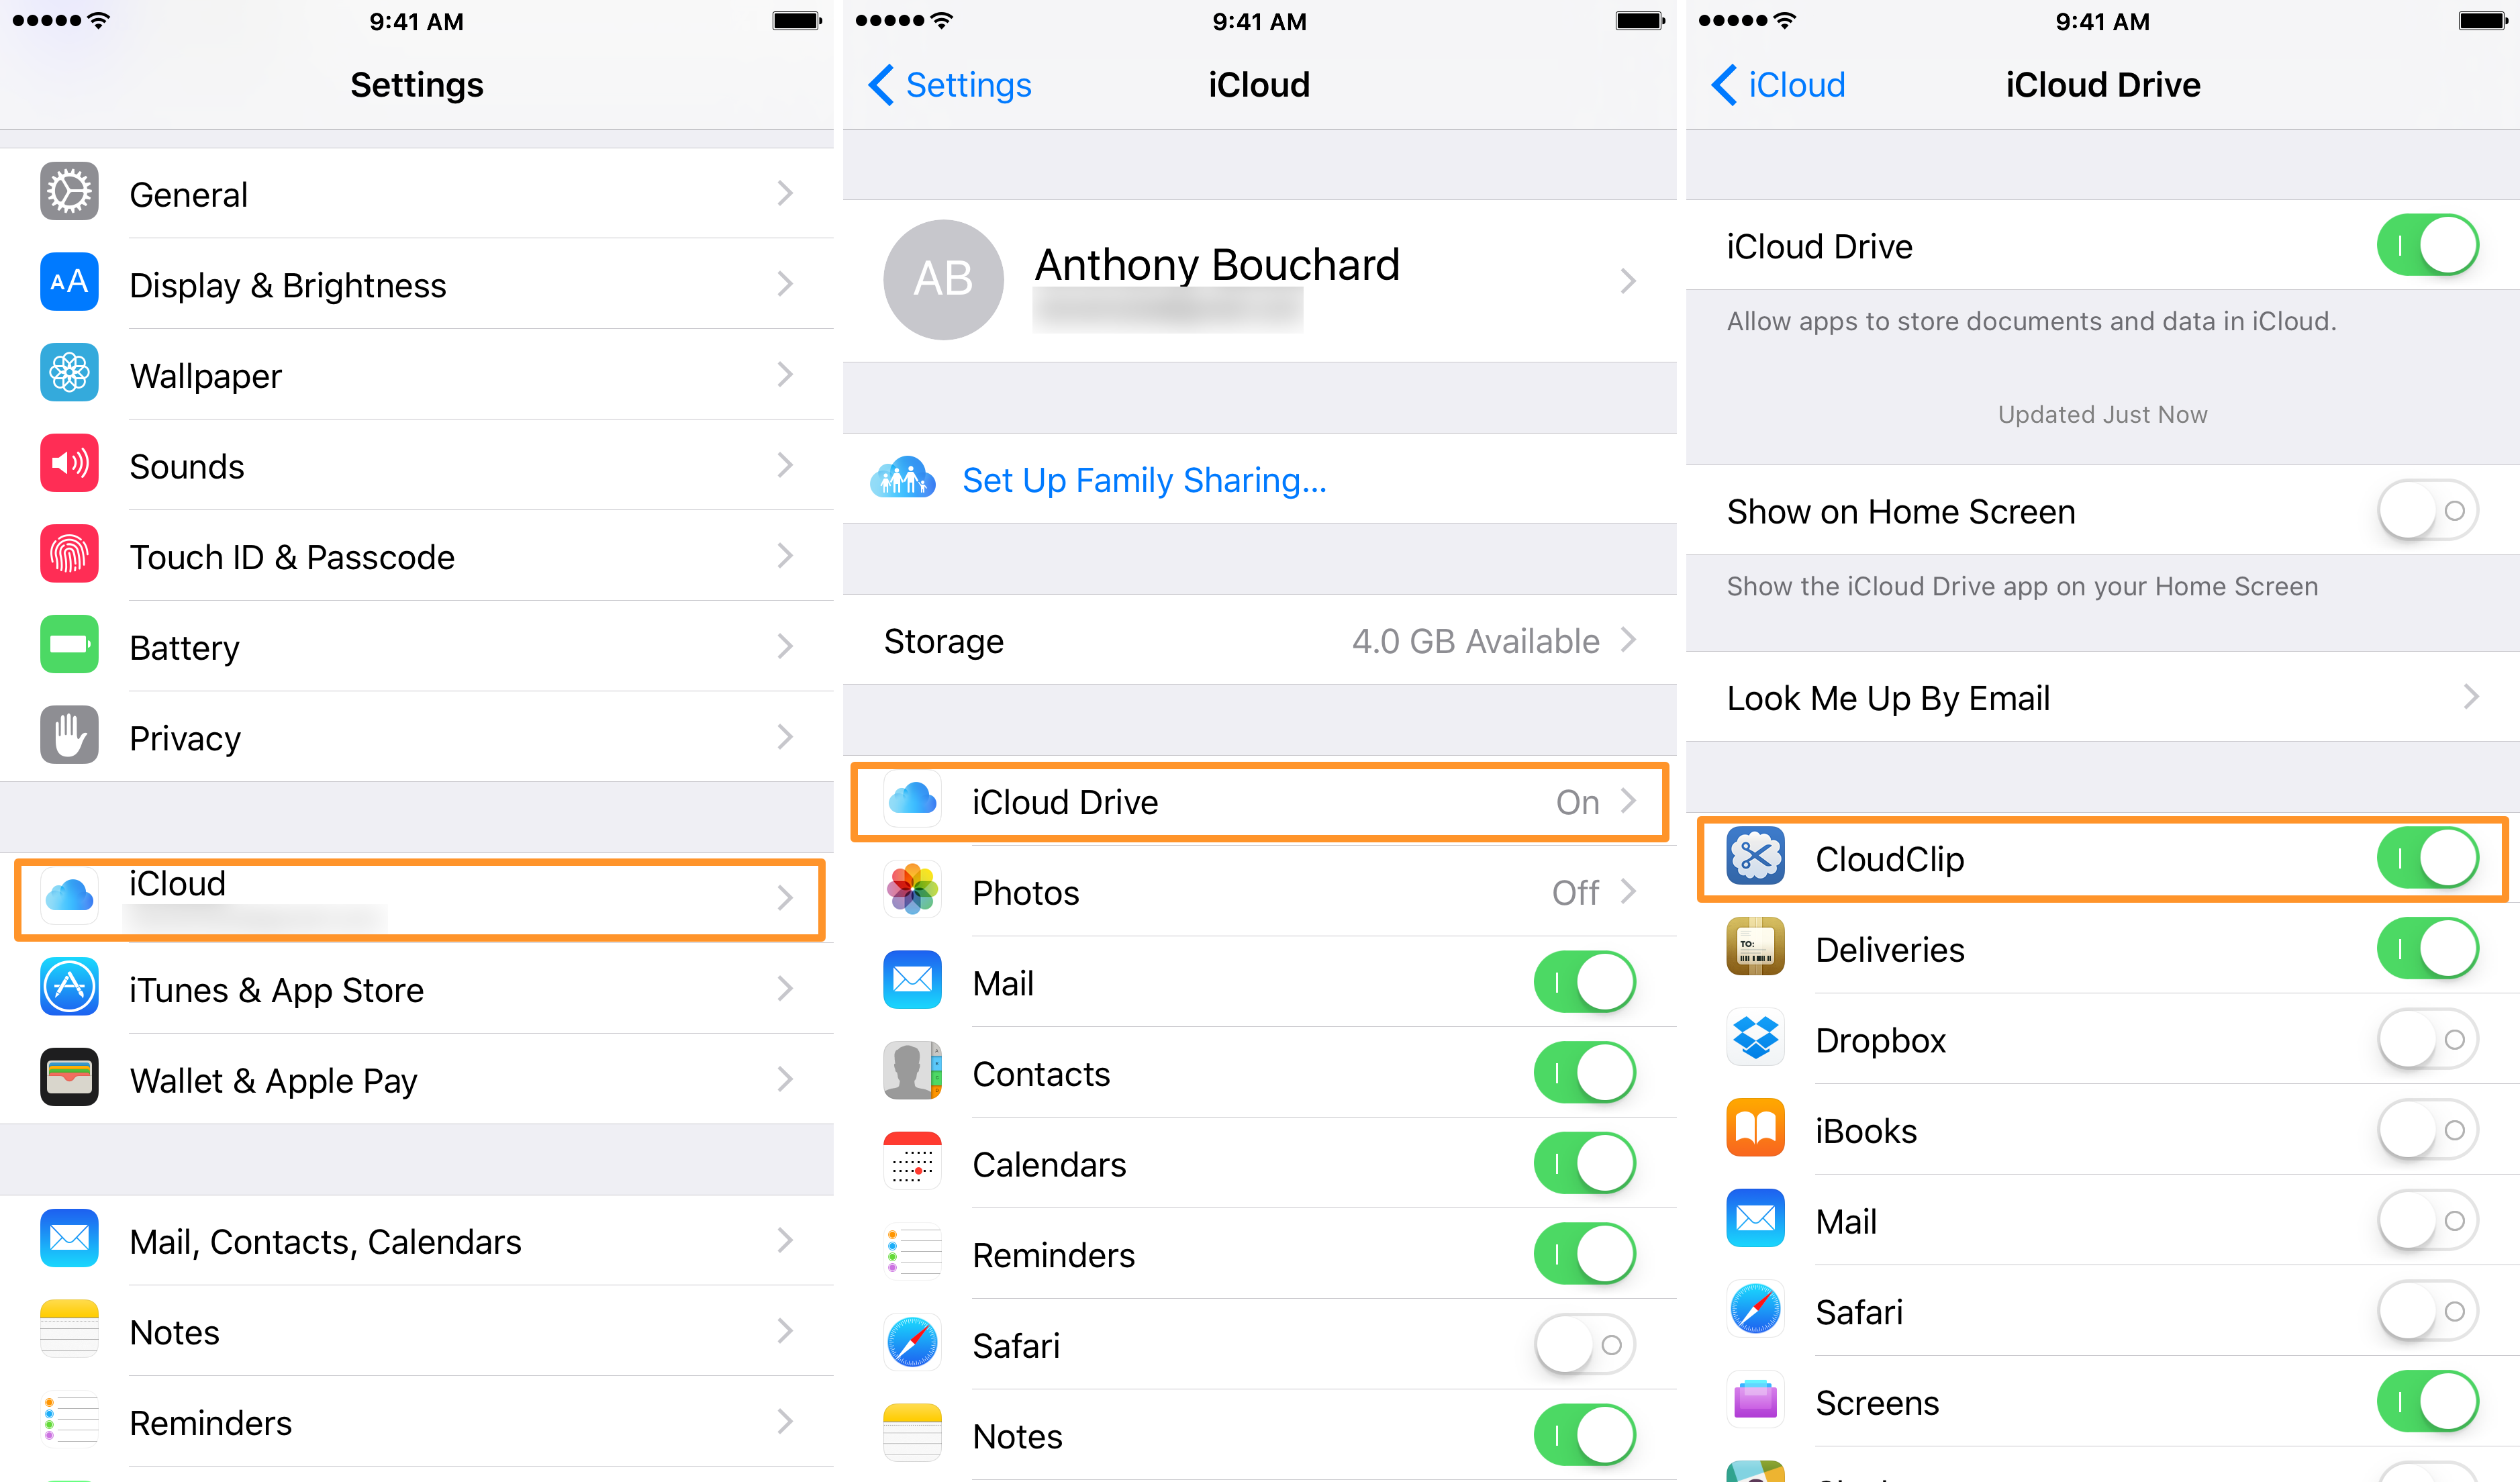 CloudClip iCloud Drive Settings on iPhone